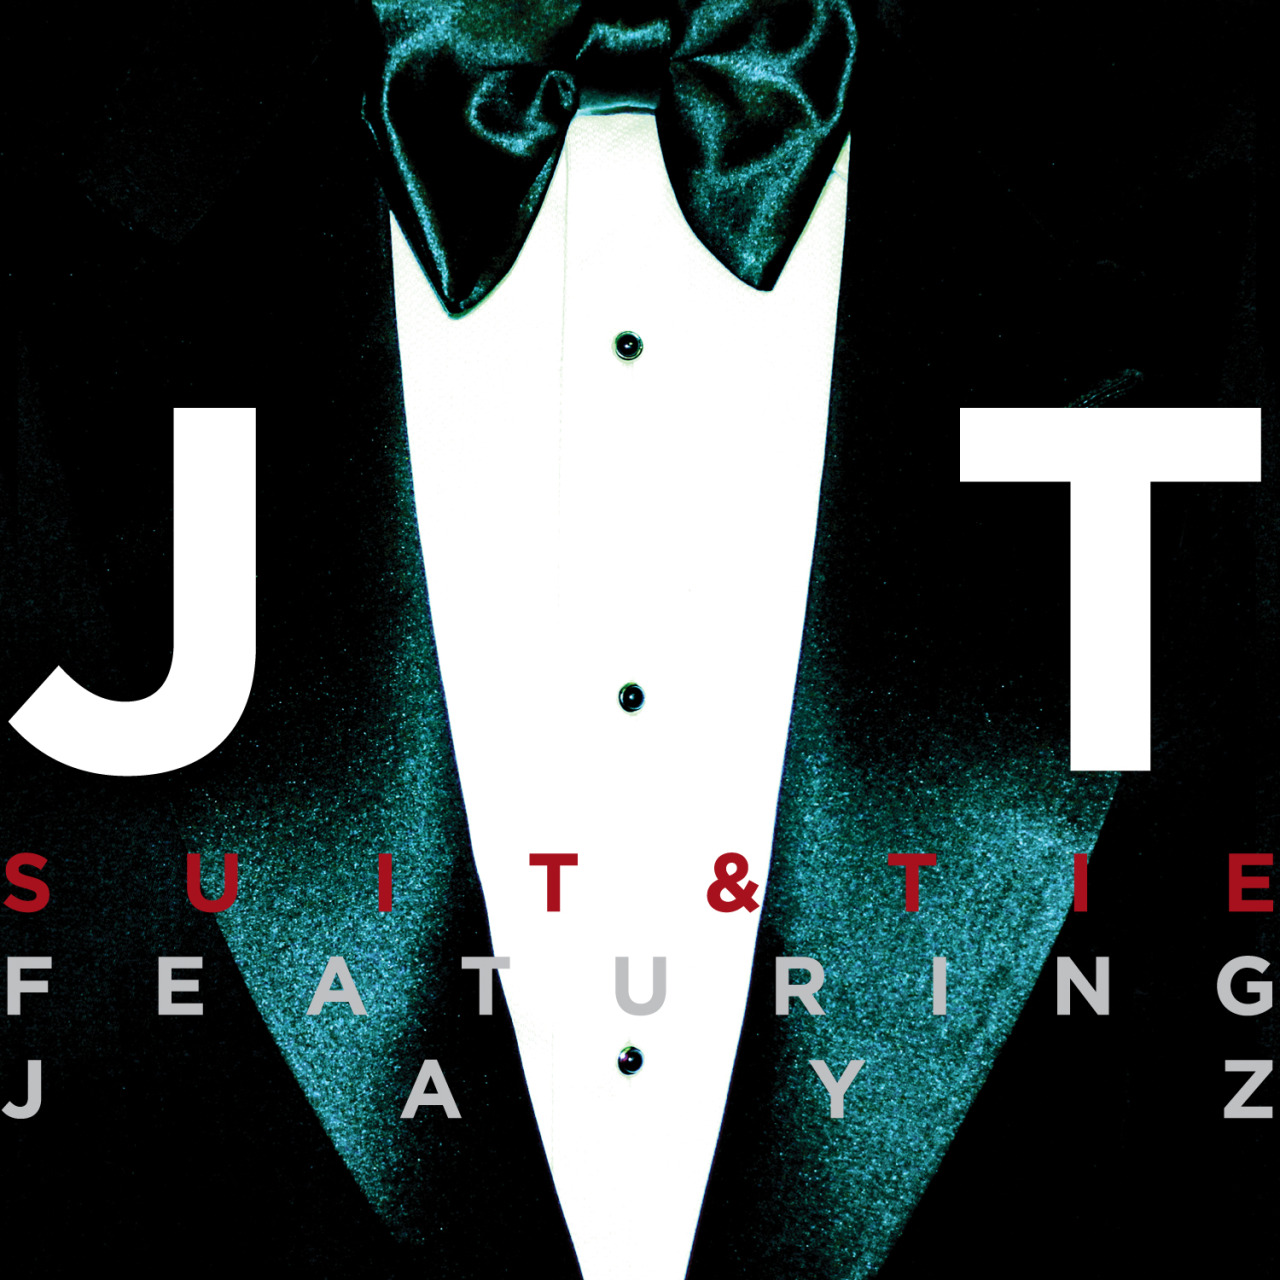 "After 6+ years of waiting, Justin Timberlake is finally back with new material. ""Suit & Tie"" is the name of the new single, features Jay-Z & was produced by Timbaland. JT's forthcoming 3rd album, The 20/20 Experience, is due later this year.""This year is an exciting one for me. As you probably have heard through the ""grapevine,"" I'm gearing up for a big 2013.  Back in June of last year, I quietly started working on what is now, my next journey with that thing I love called MUSIC.  The inspiration for this really came out of the blue and to be honest, I didn't expect anything out of it. I just went into the studio and started playing around with some sounds and songs. It was probably the best time I've had in my career… Just creating with no rules and/or end goal in mind and really enjoying the process.  What I came up with is something I couldn't be more excited about! It is full of inspiration that I grew up listening to and some newfound muses that I've discovered along the way.  I'm calling it ""The 20/20 Experience,"" and it's coming out this year."" - Justin Timberlake  Are you guys excited? Here's the single:  Suit & Tie // buy"